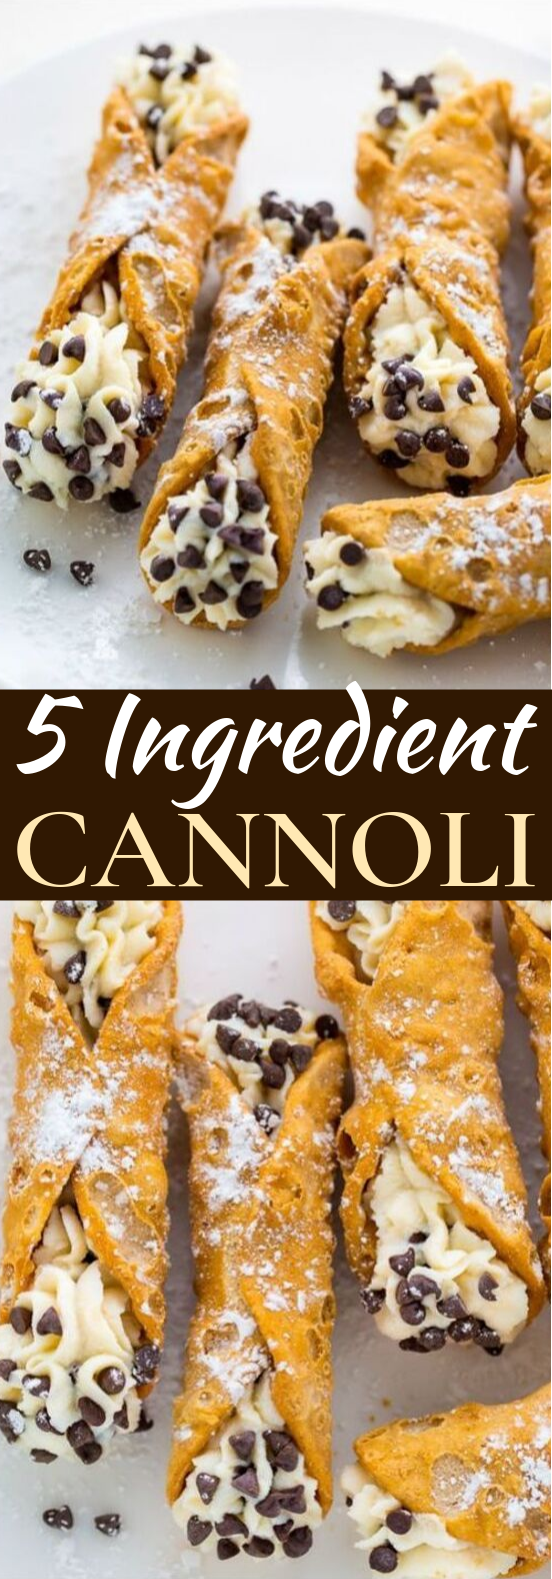 5-Ingredient Cannolis #desserts #easy